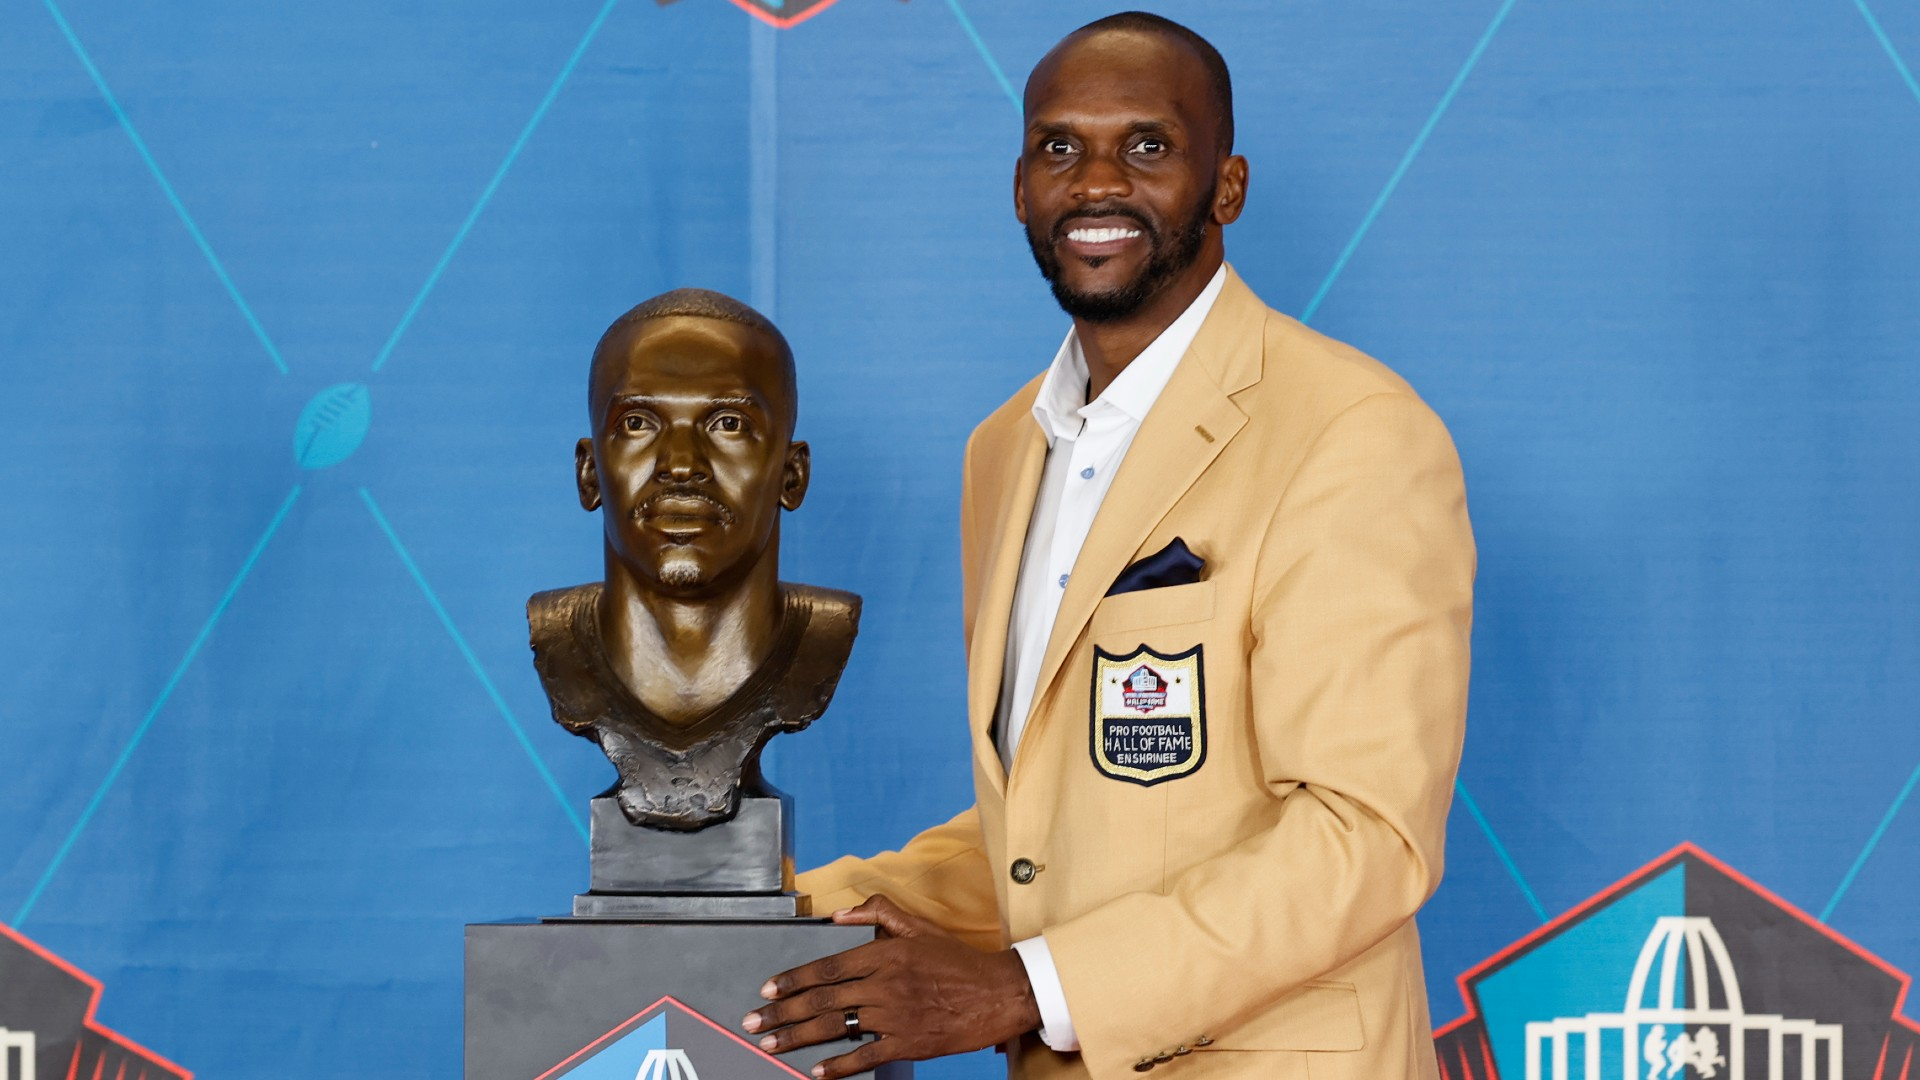 Isaac Bruce's Hall of Fame speech dripped with a righteous vindication: 'How do you like me now?'